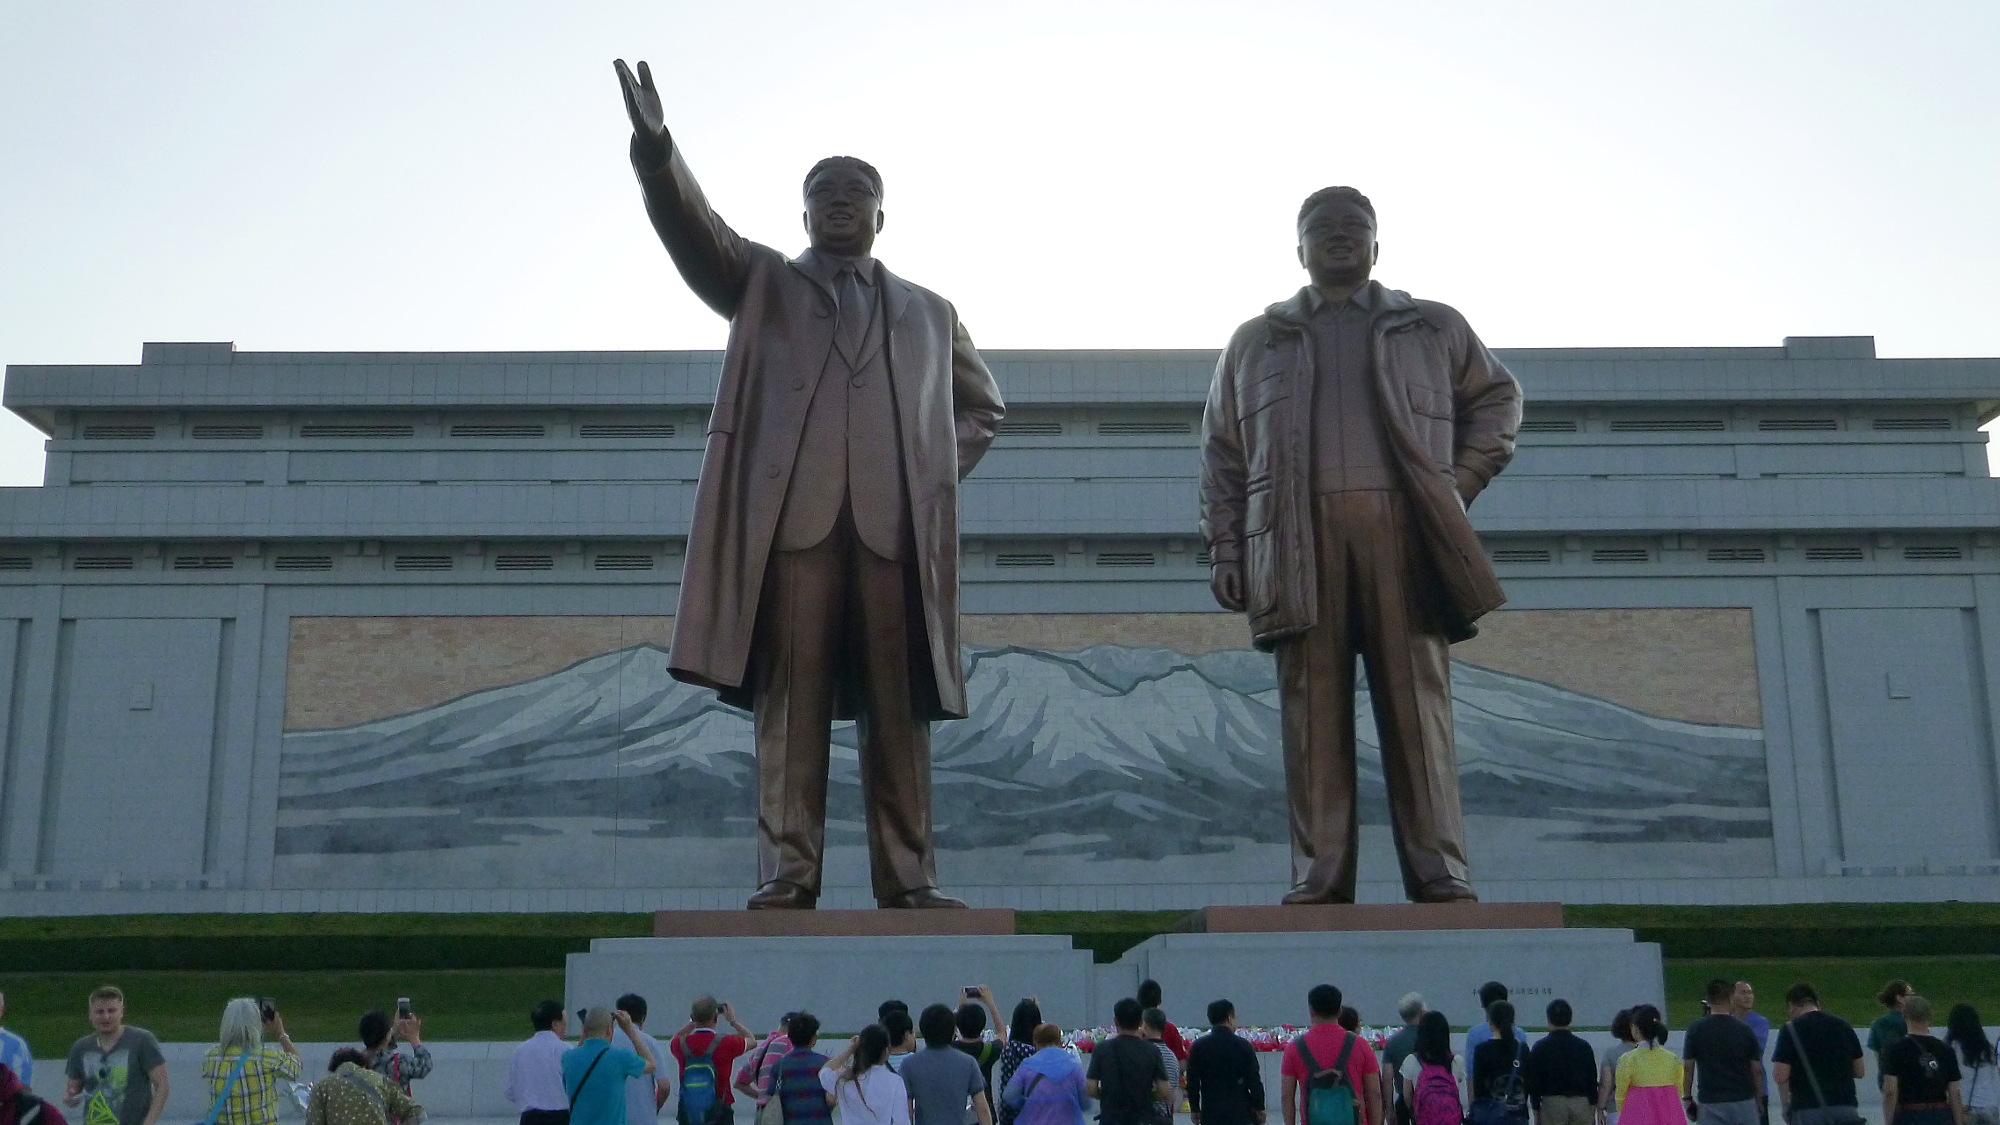 What is it like to visit North Korea? The famous bronze statues of North Korean leaders Kim Il-Sung and Kim Jong-Il with tourists in front.